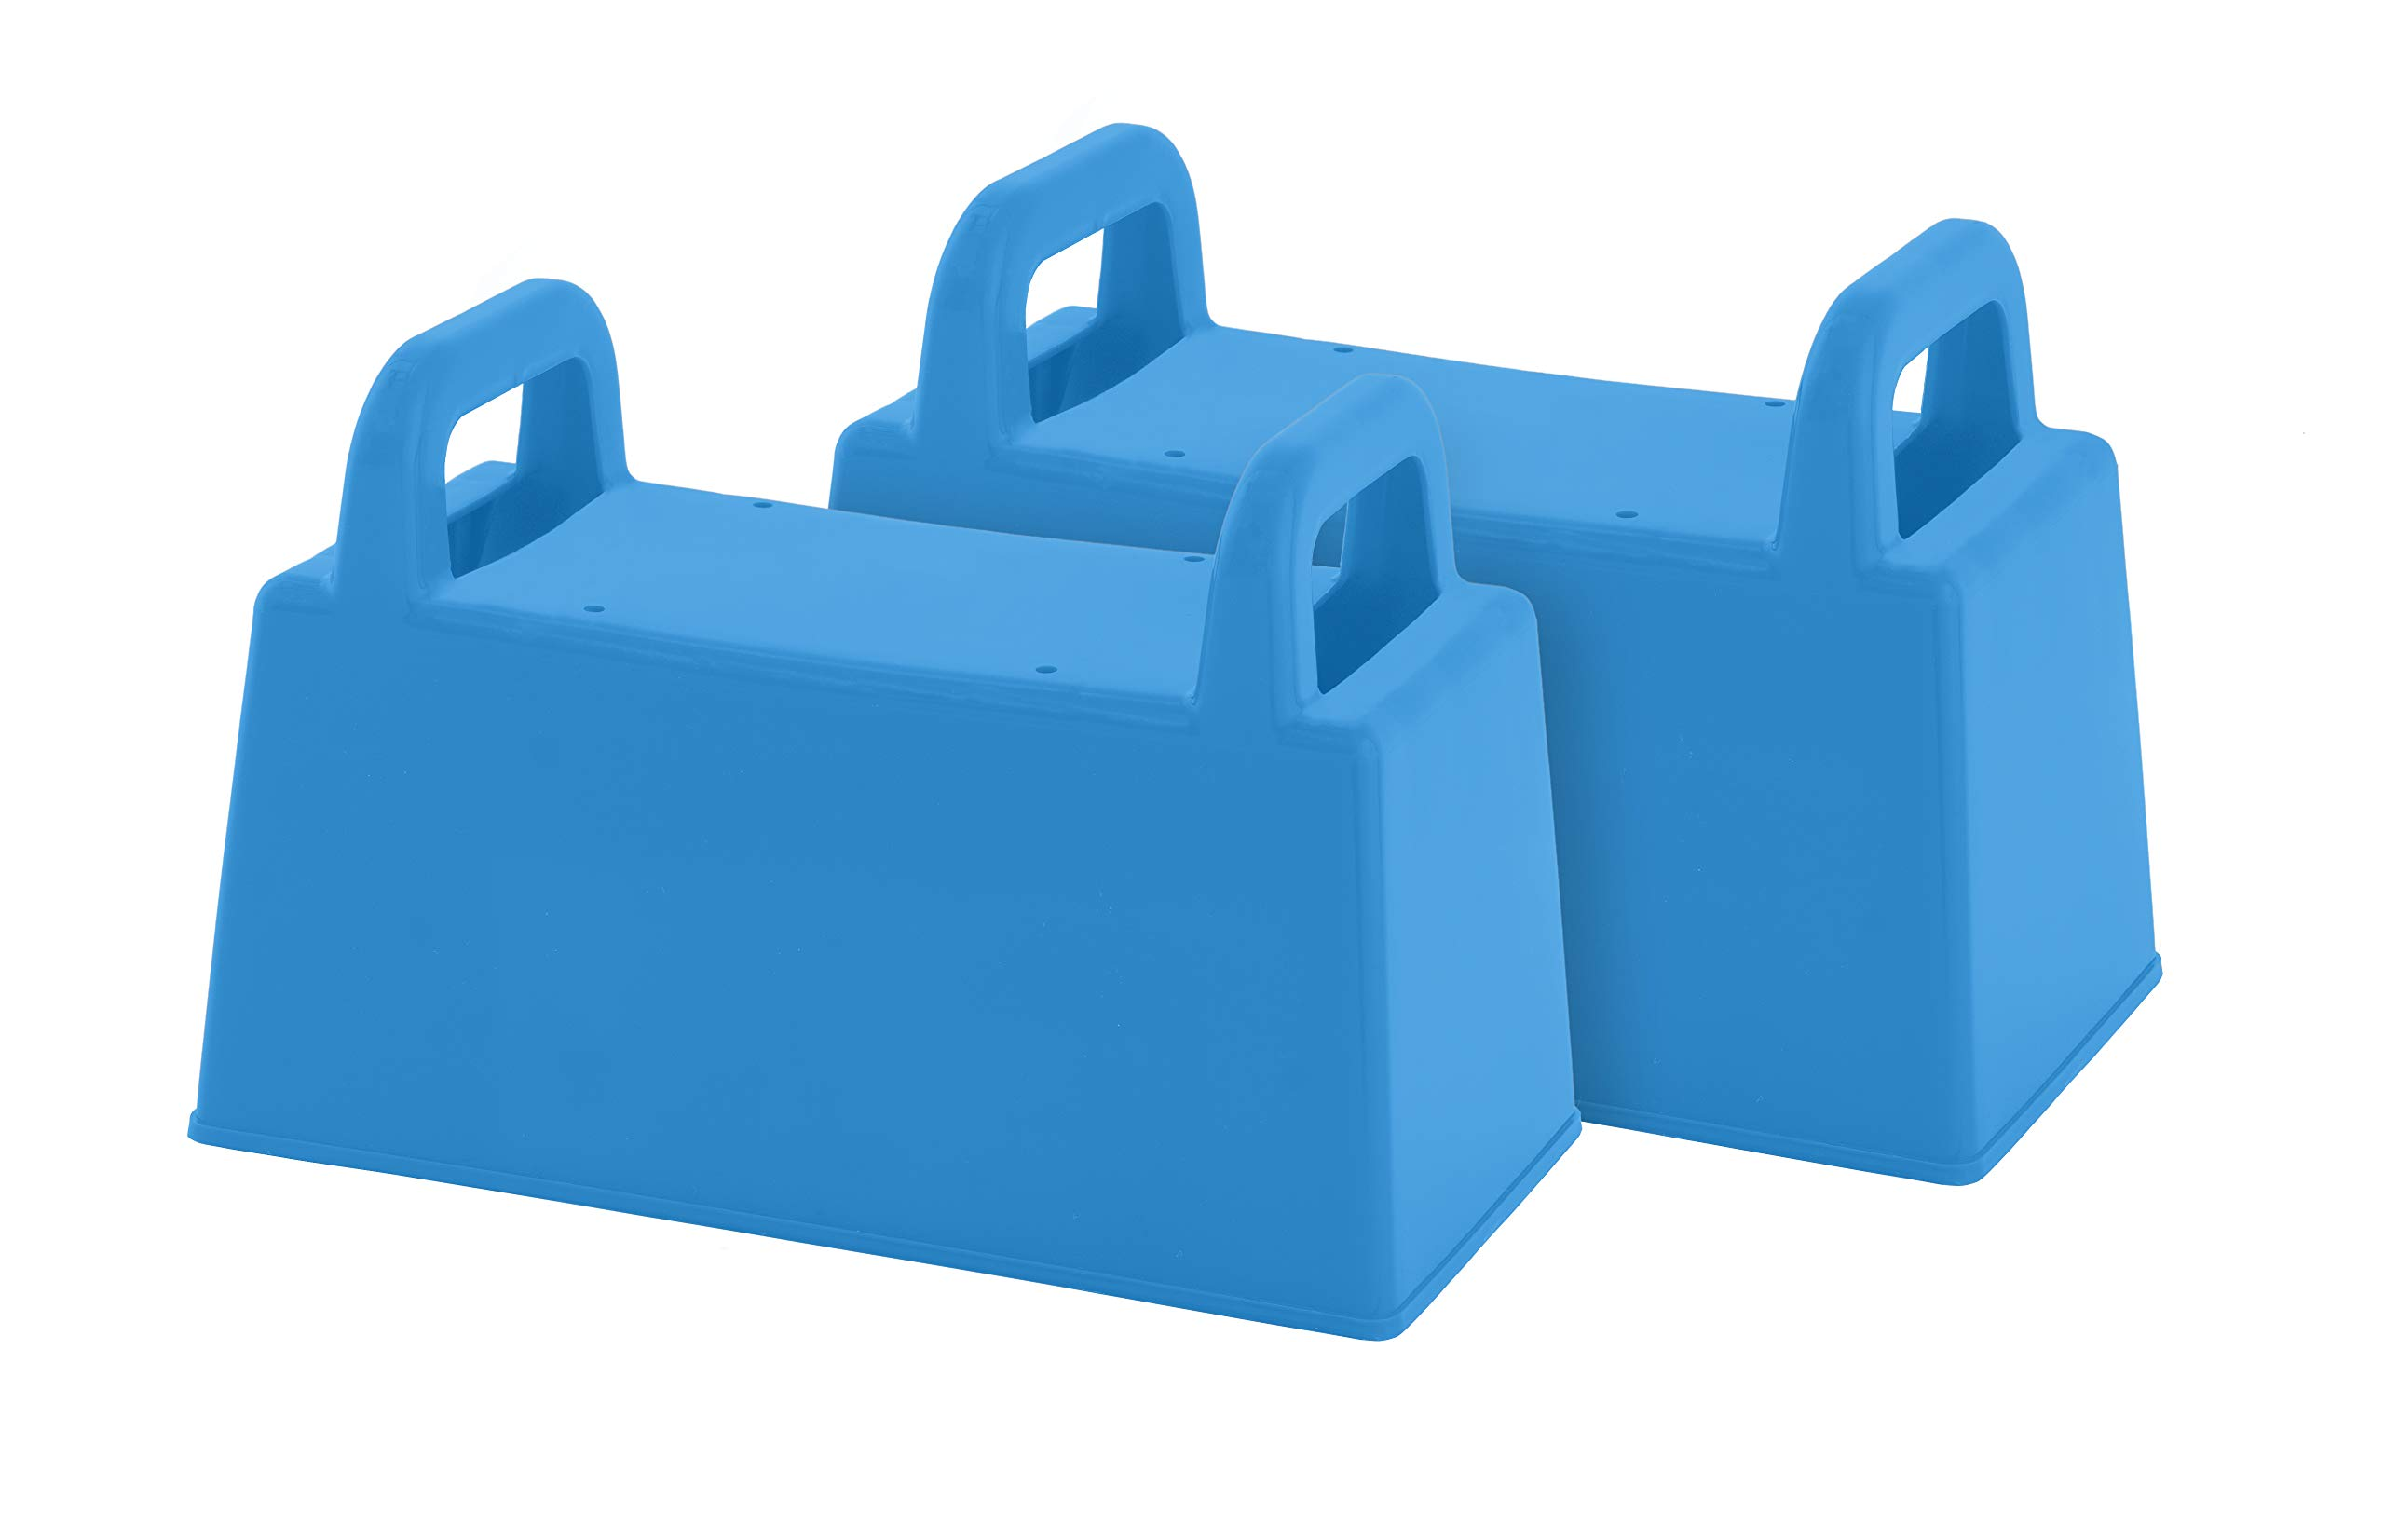 Superio Sand Toy Block Mold & Sand Mold Brick Form Shape - Light Blue Kids Durable Outdoor Toys Winter Snow Fort, Snow Castle, Summer Sand Box, Beach Castle. Sturdy and Well Designed